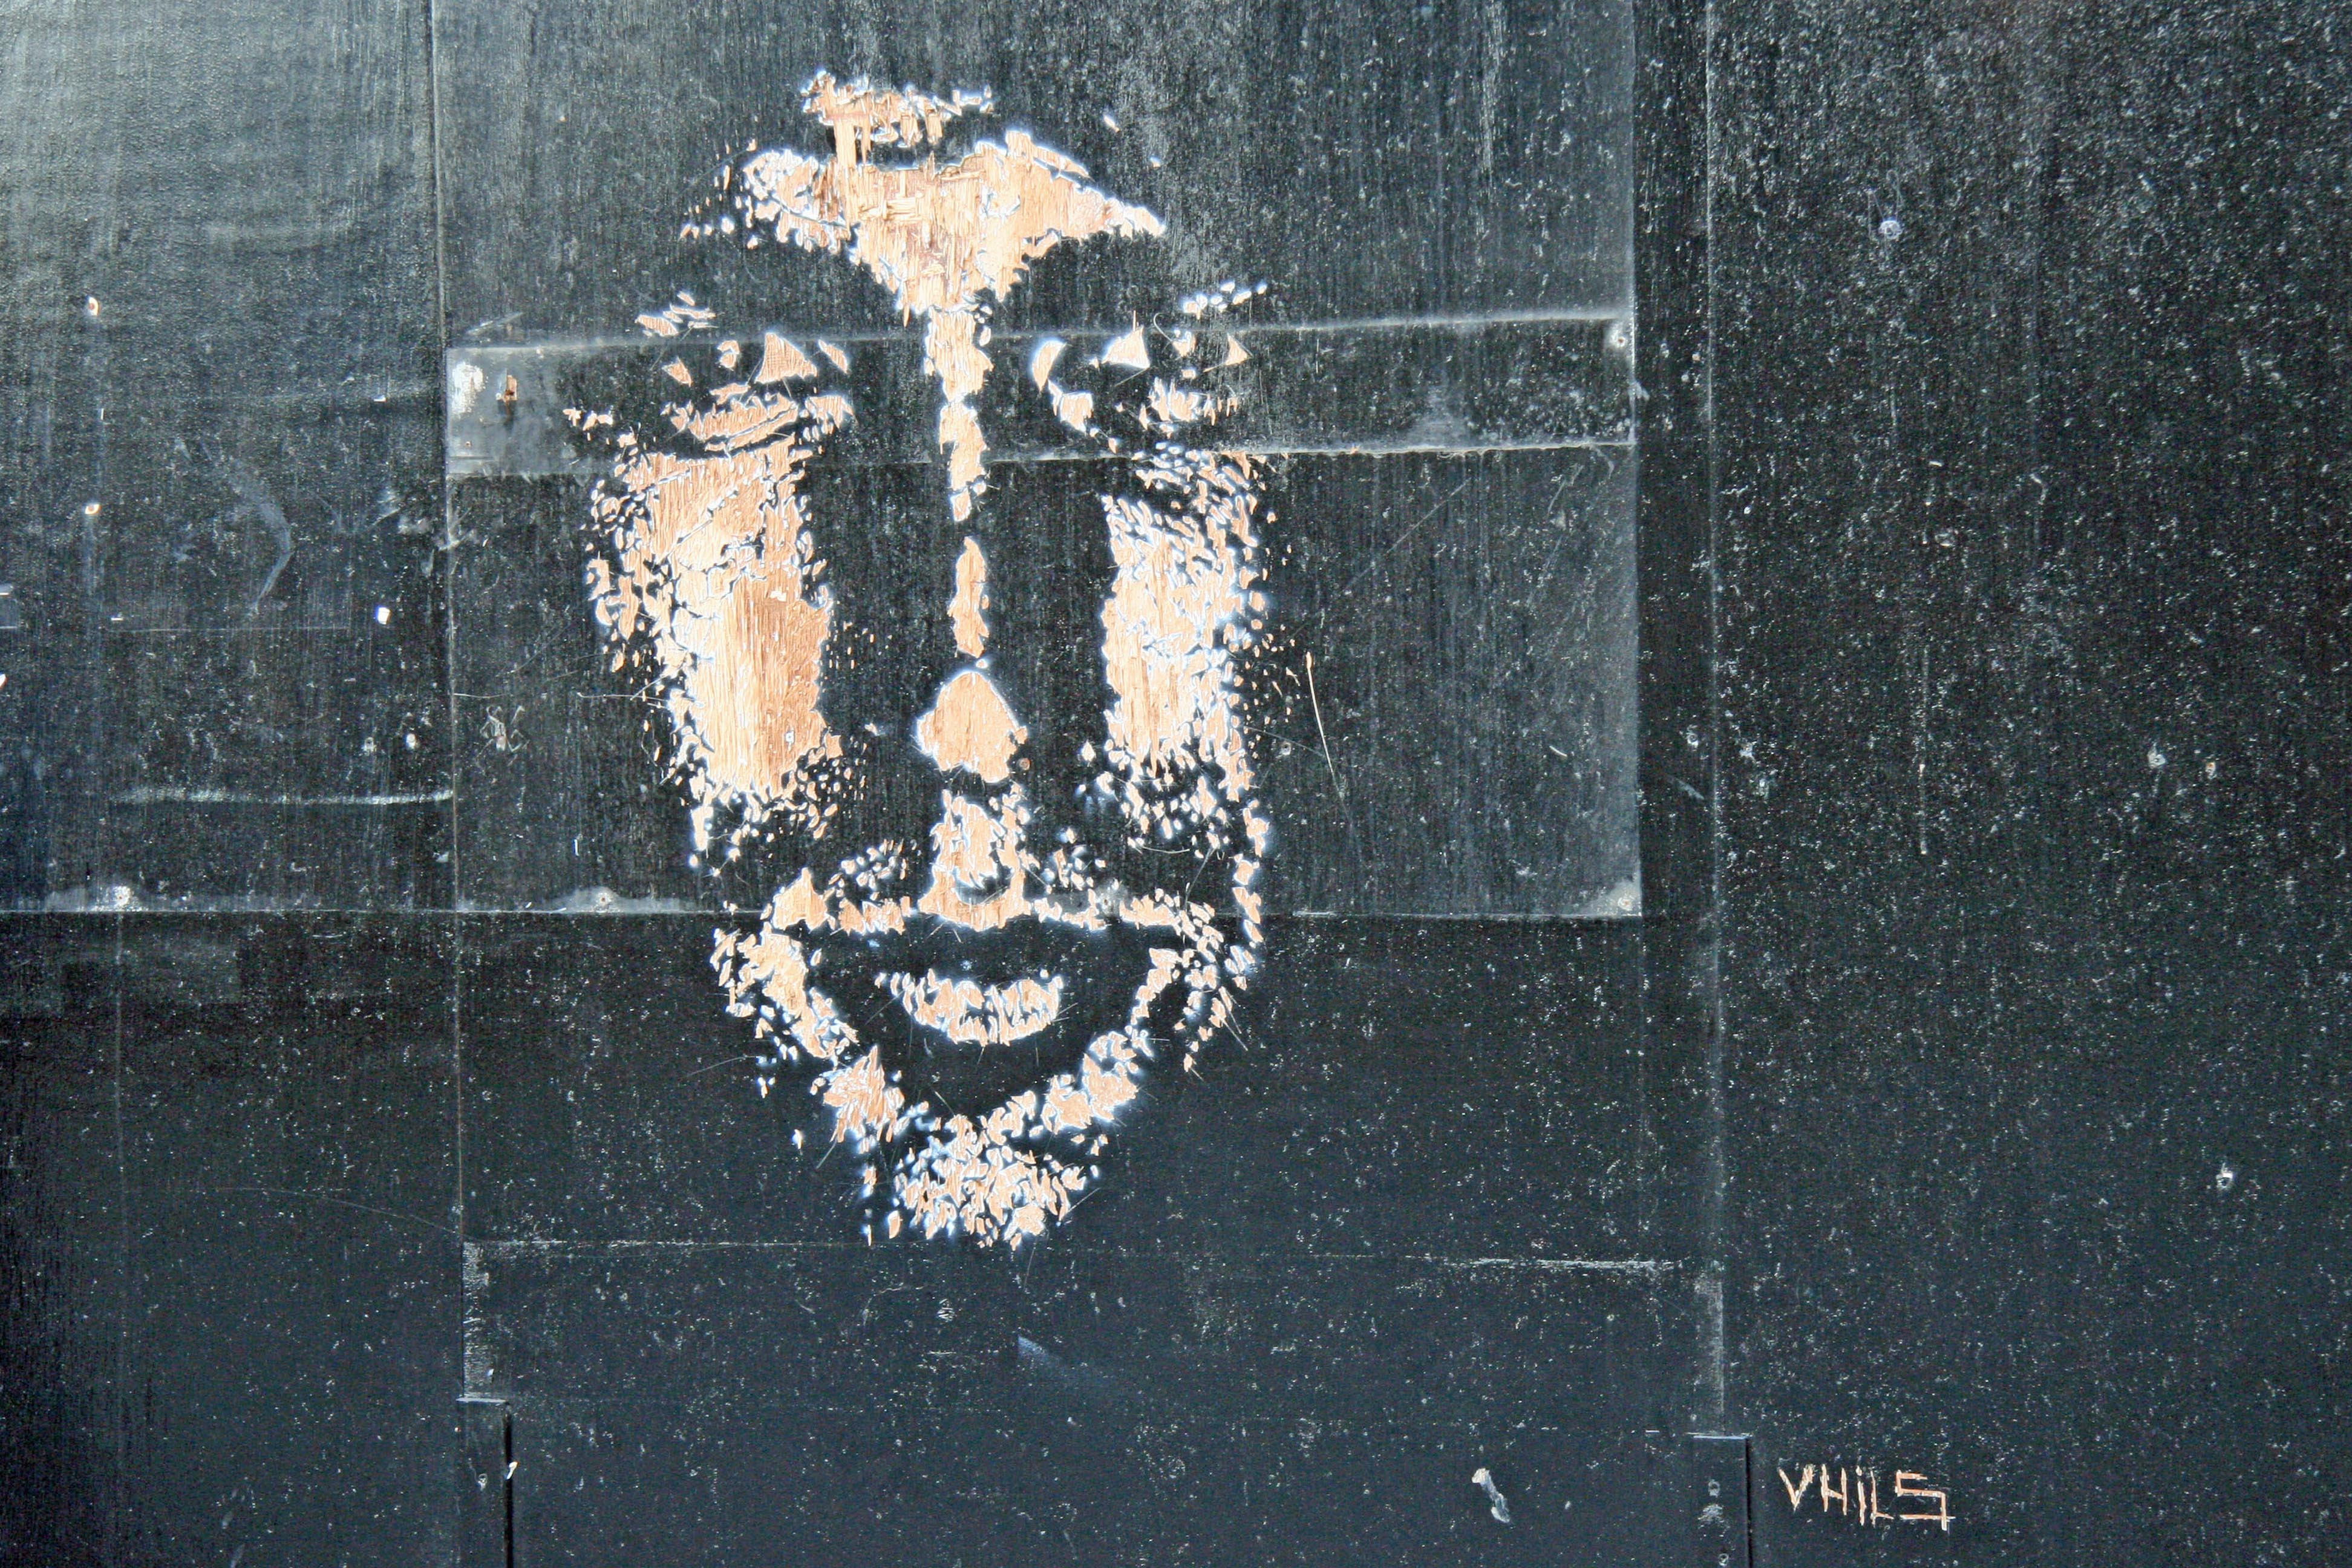 Street Art by Vhils on a wooden hoarding in Camden